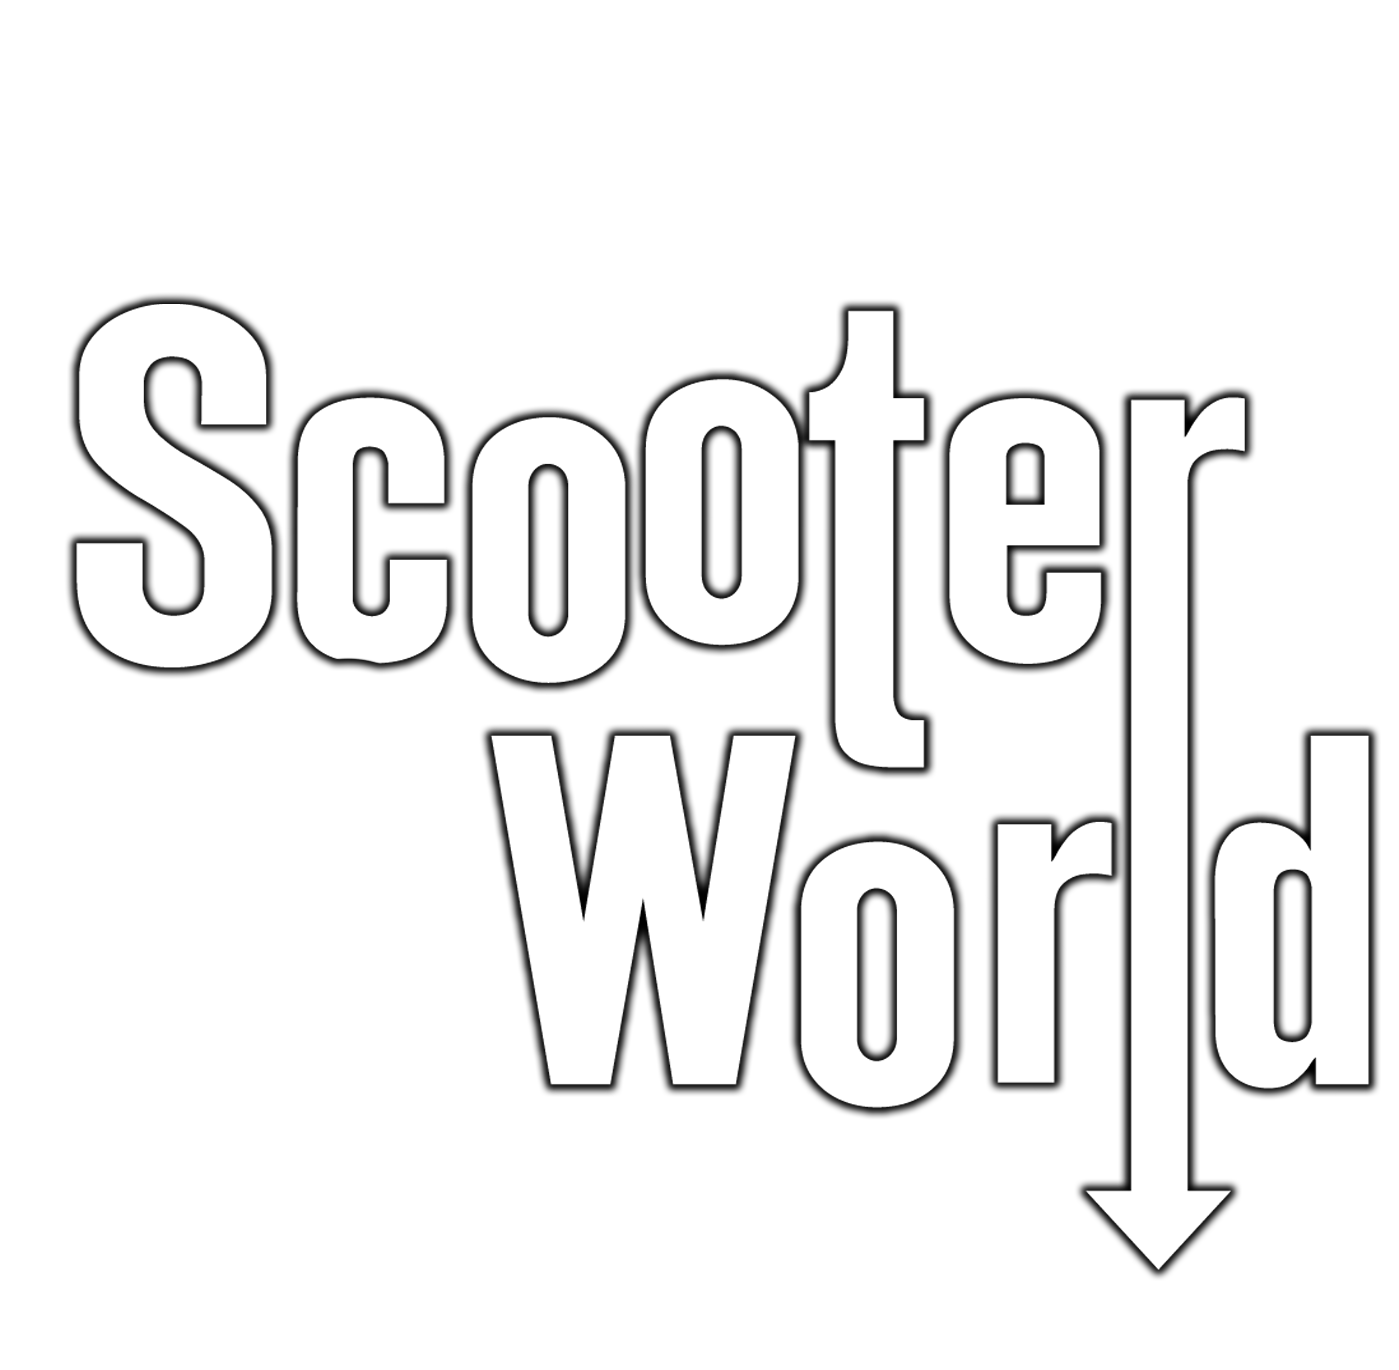 Scooter World LLC